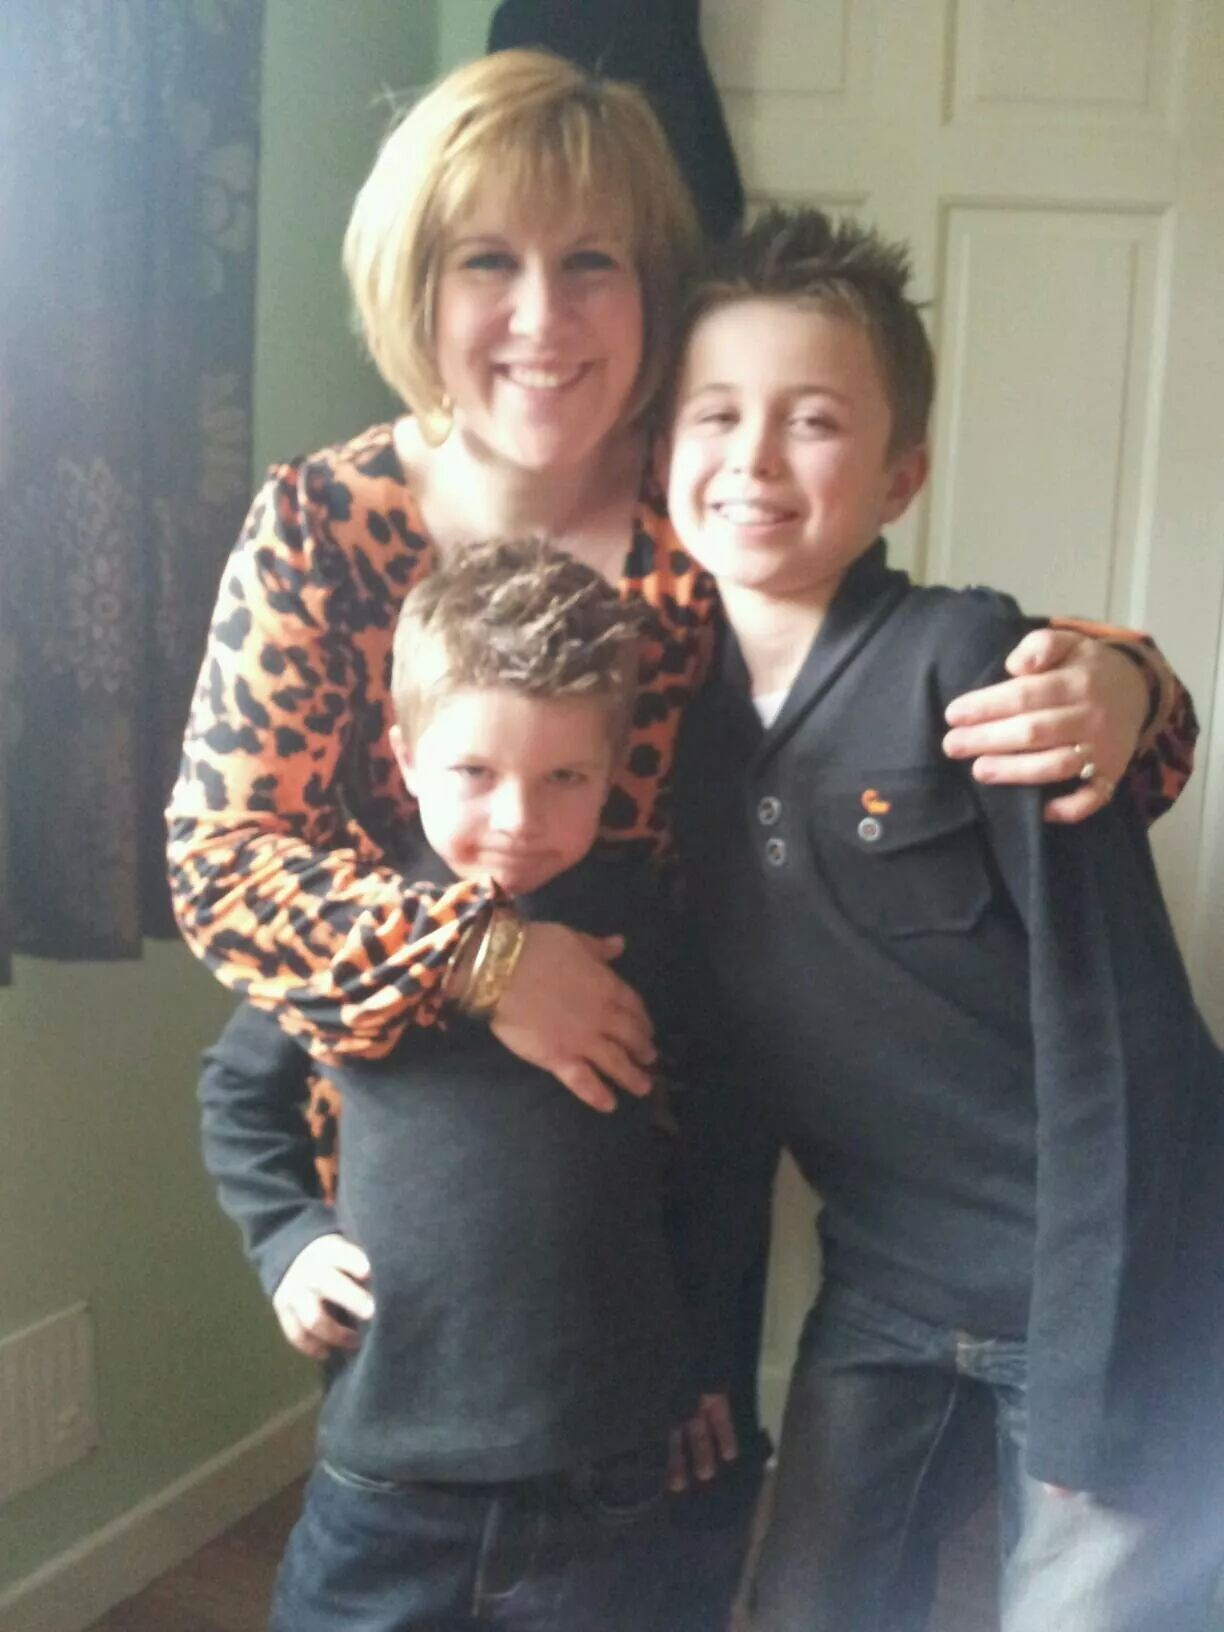 michelle and her 2 sons James and Dylan.